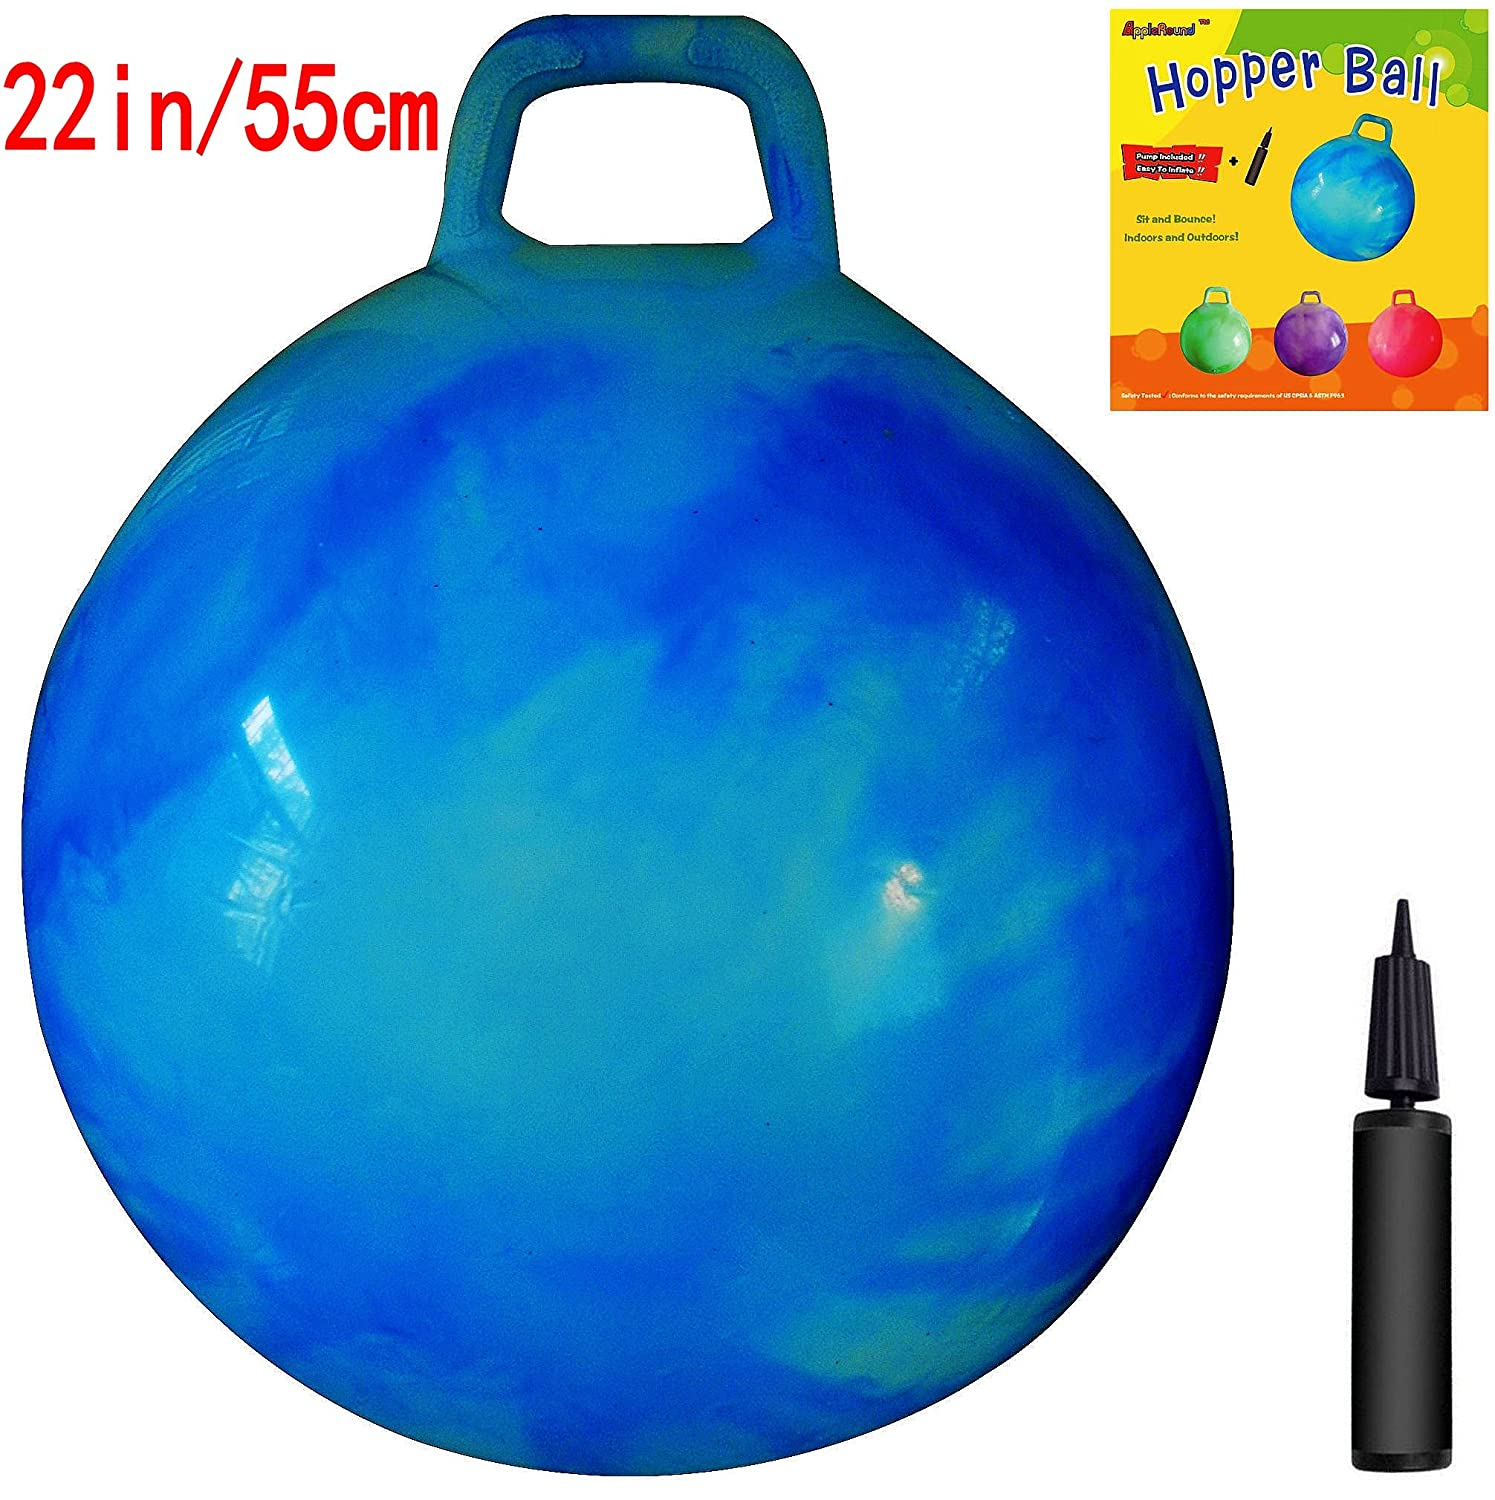 AppleRound Space Hopper Ball with Air Pump 22in 55cm Diameter for Ages 10 12 Hop Ball Kangaroo Bouncer Hoppity Hop Jumping Ball Sit Bounce